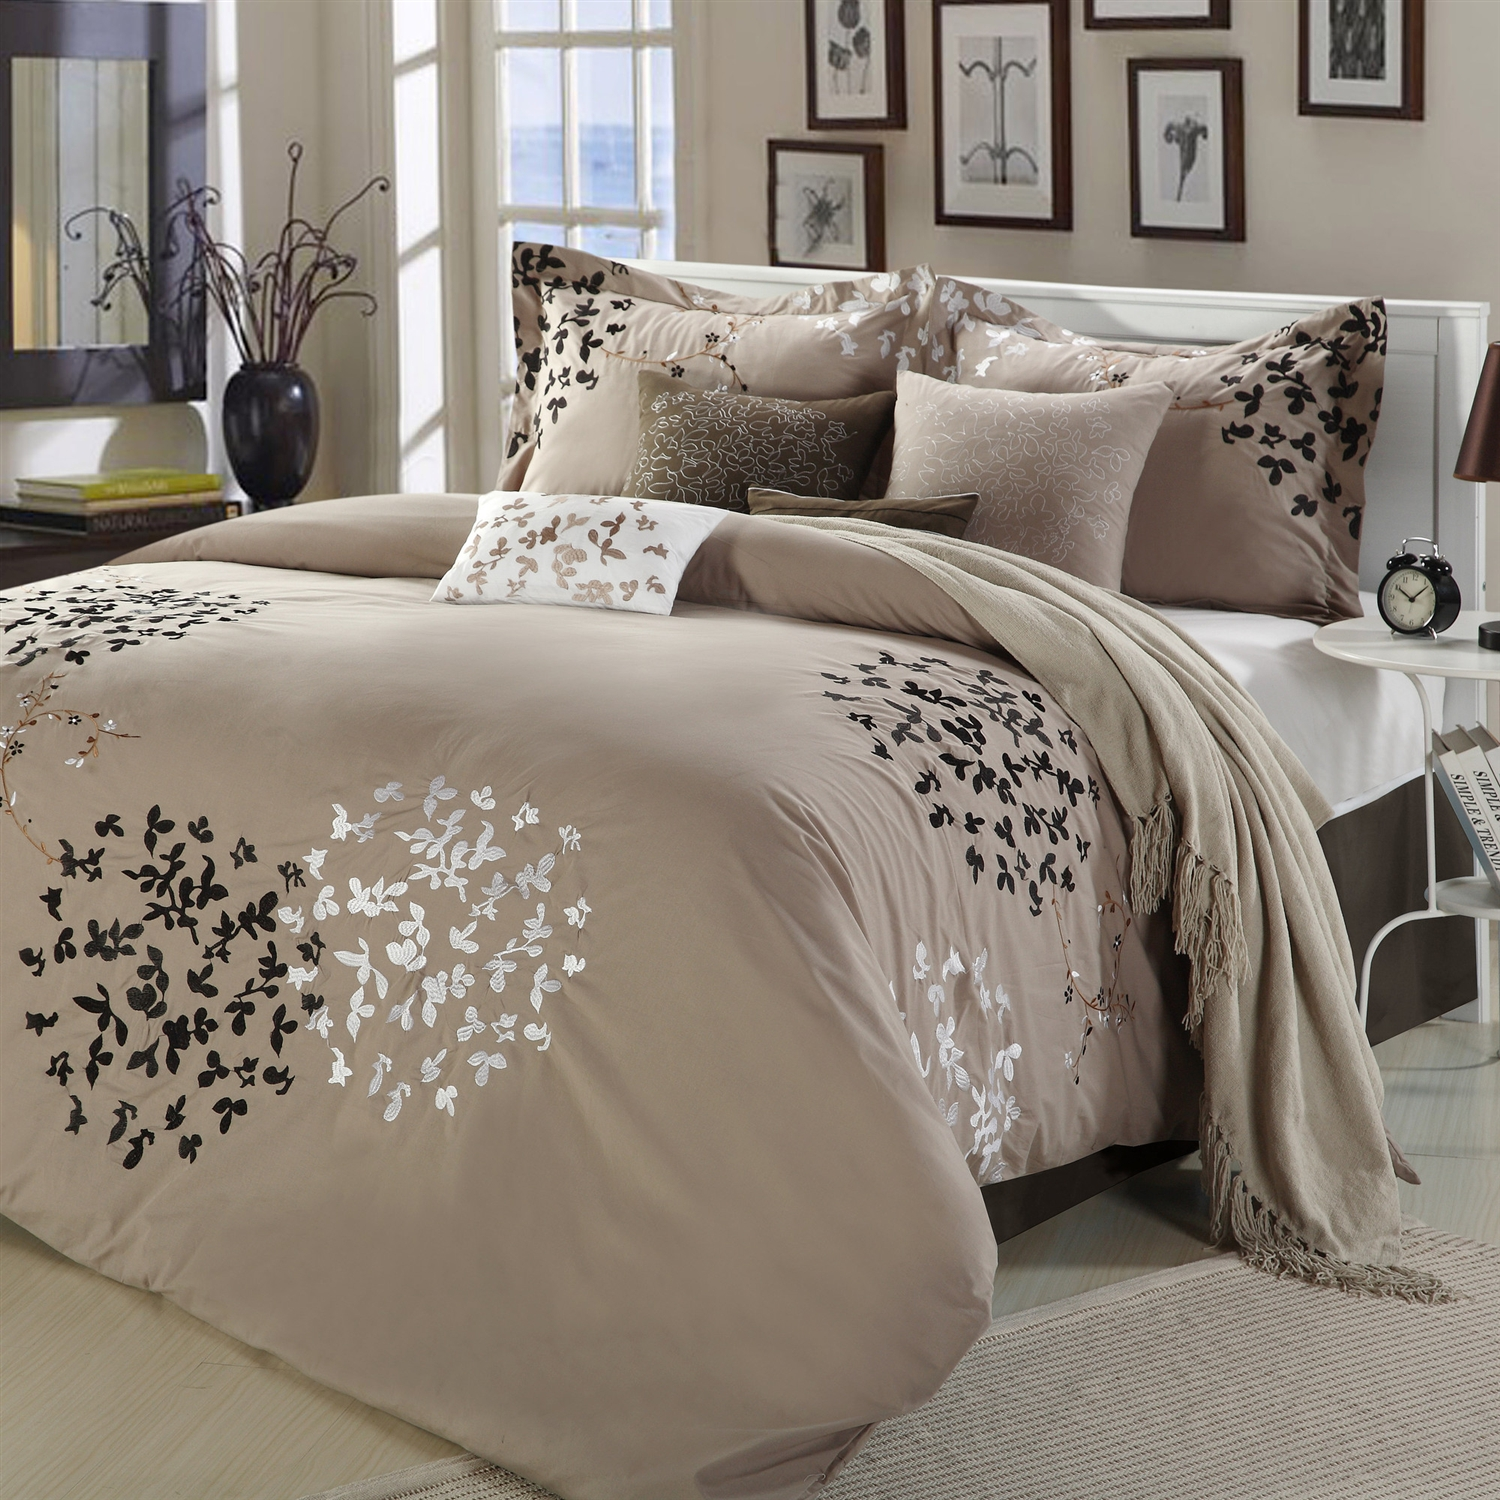 Classy queen size comforter sets for bedroom design with cheap queen size comforter sets